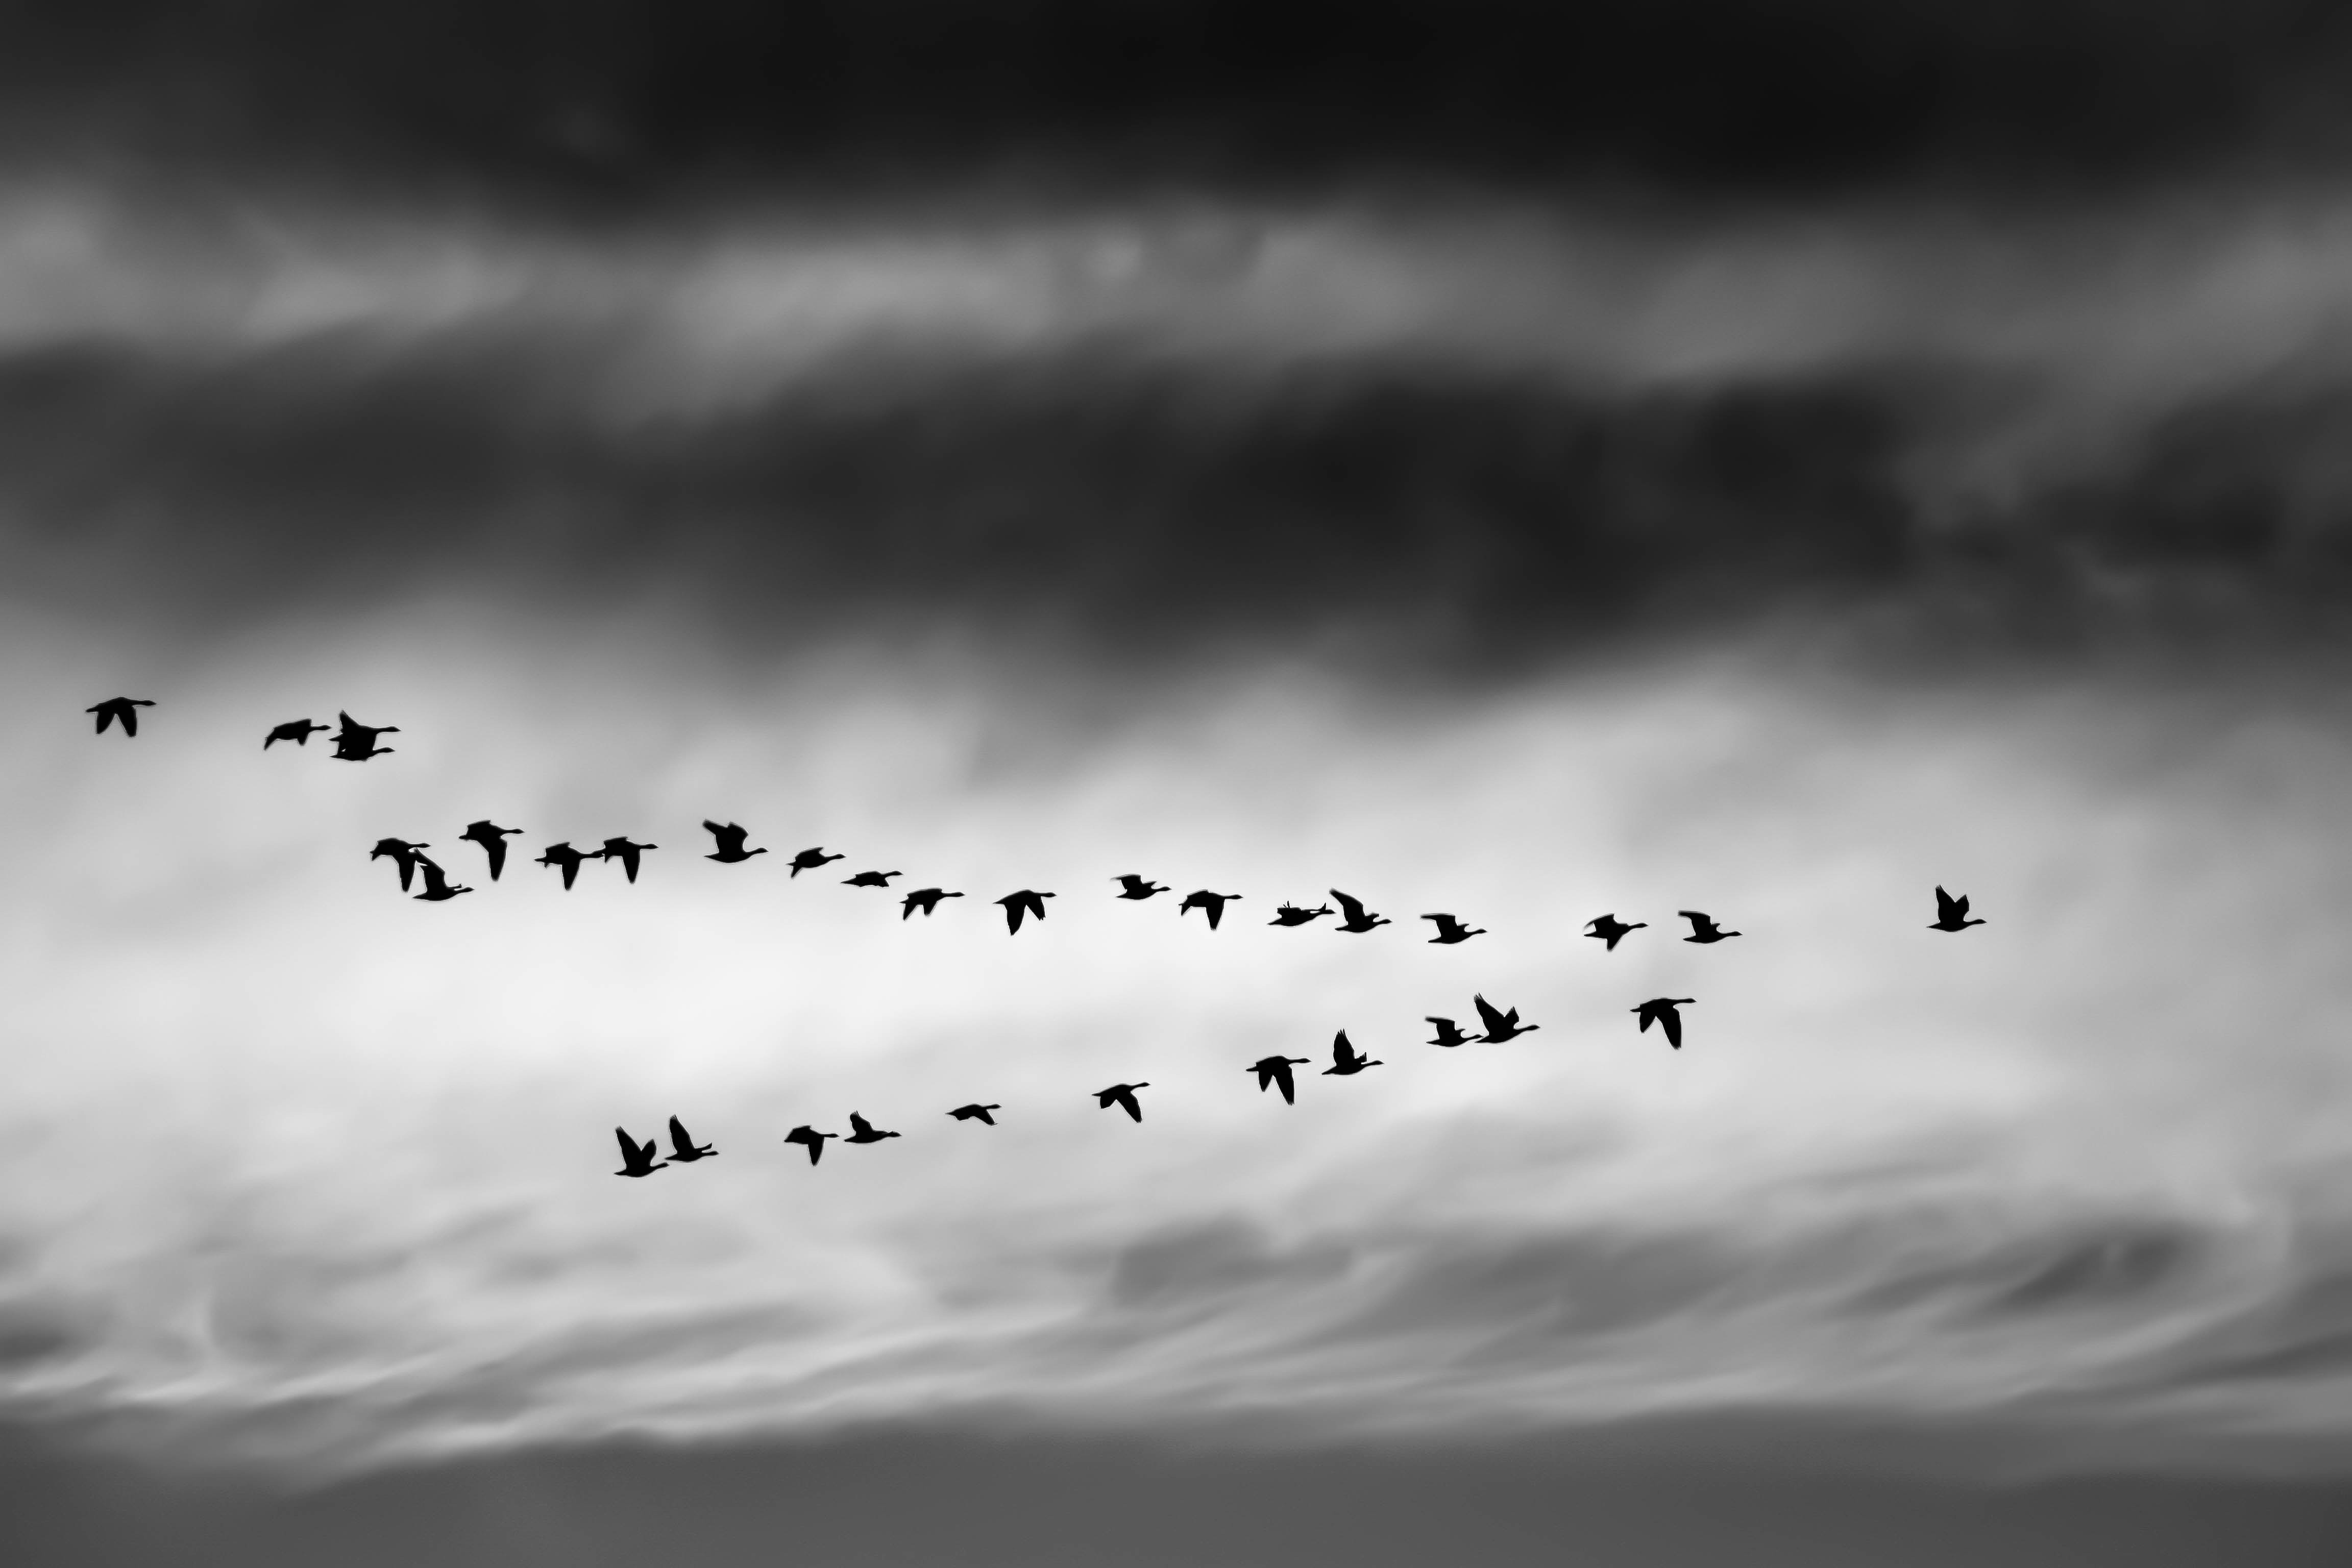 In Celtic Christian story the wild goose was the visible image of the presence of the Holy Spirit. Photo by Ethan Weil.